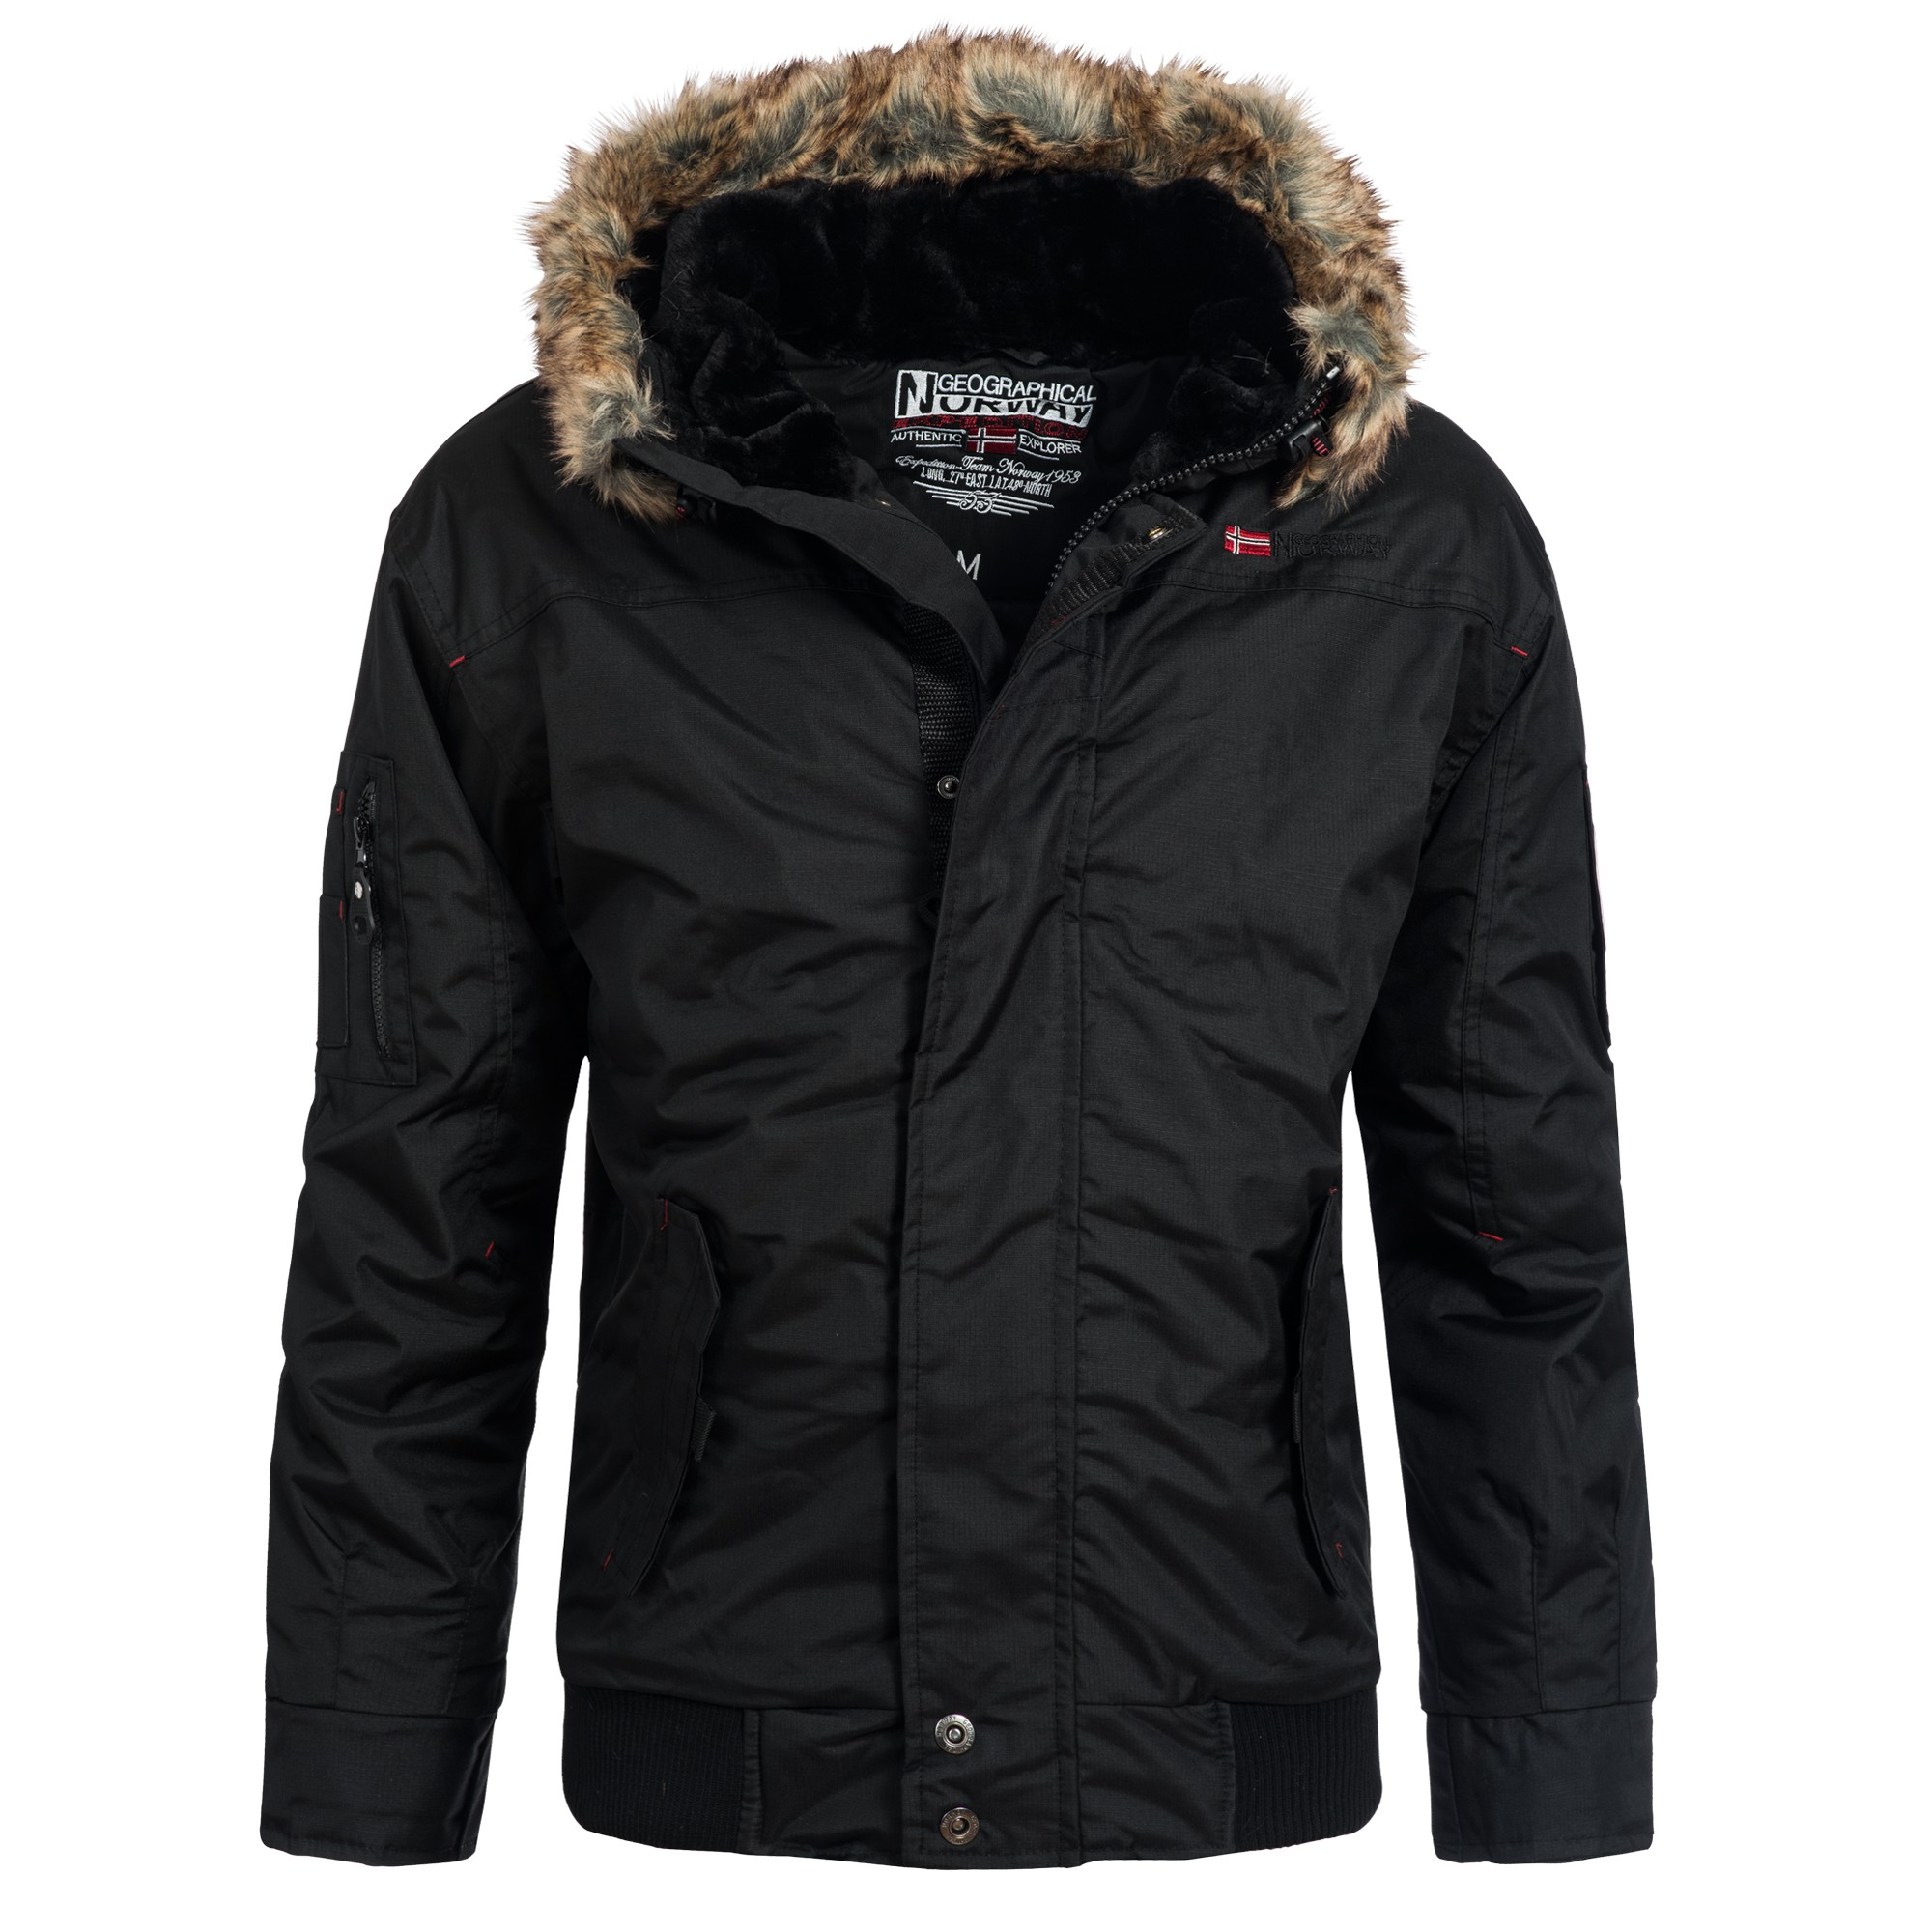 geographical norway artic herren winterjacke jacke parka. Black Bedroom Furniture Sets. Home Design Ideas